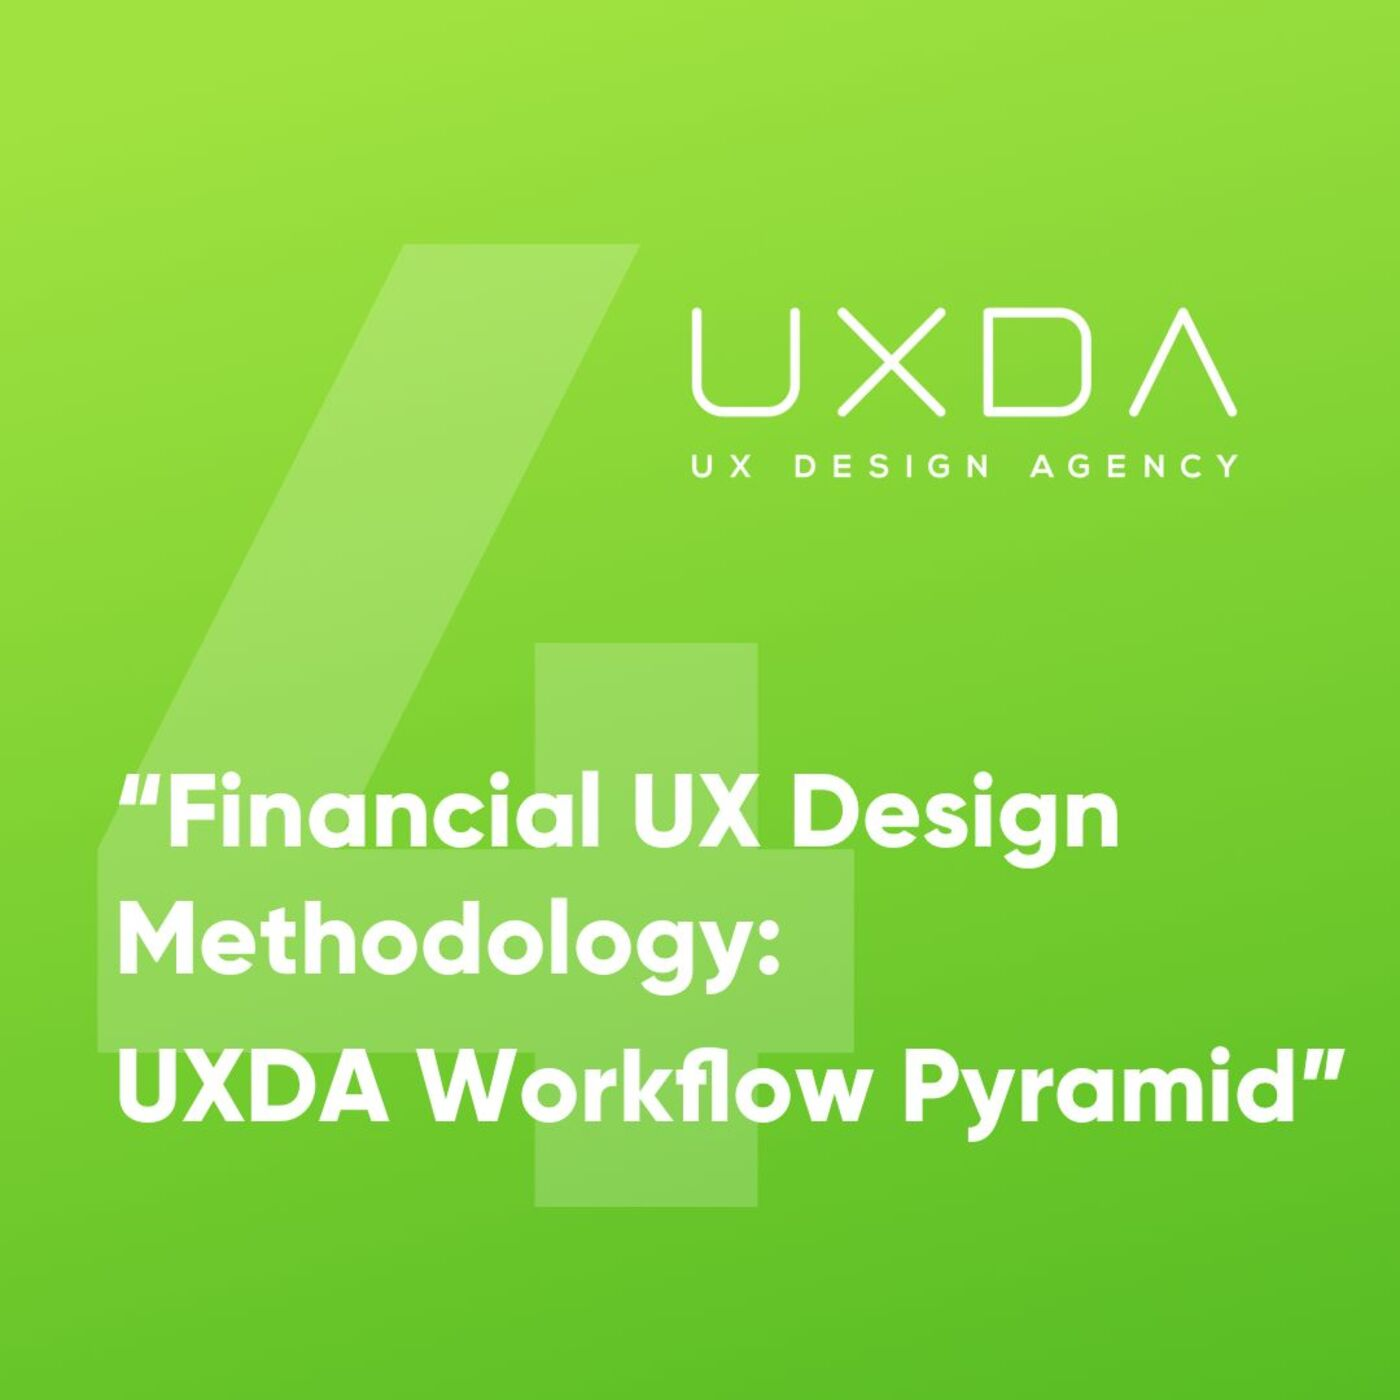 #4 The Workflow Pyramid of the Financial UX design Methodology